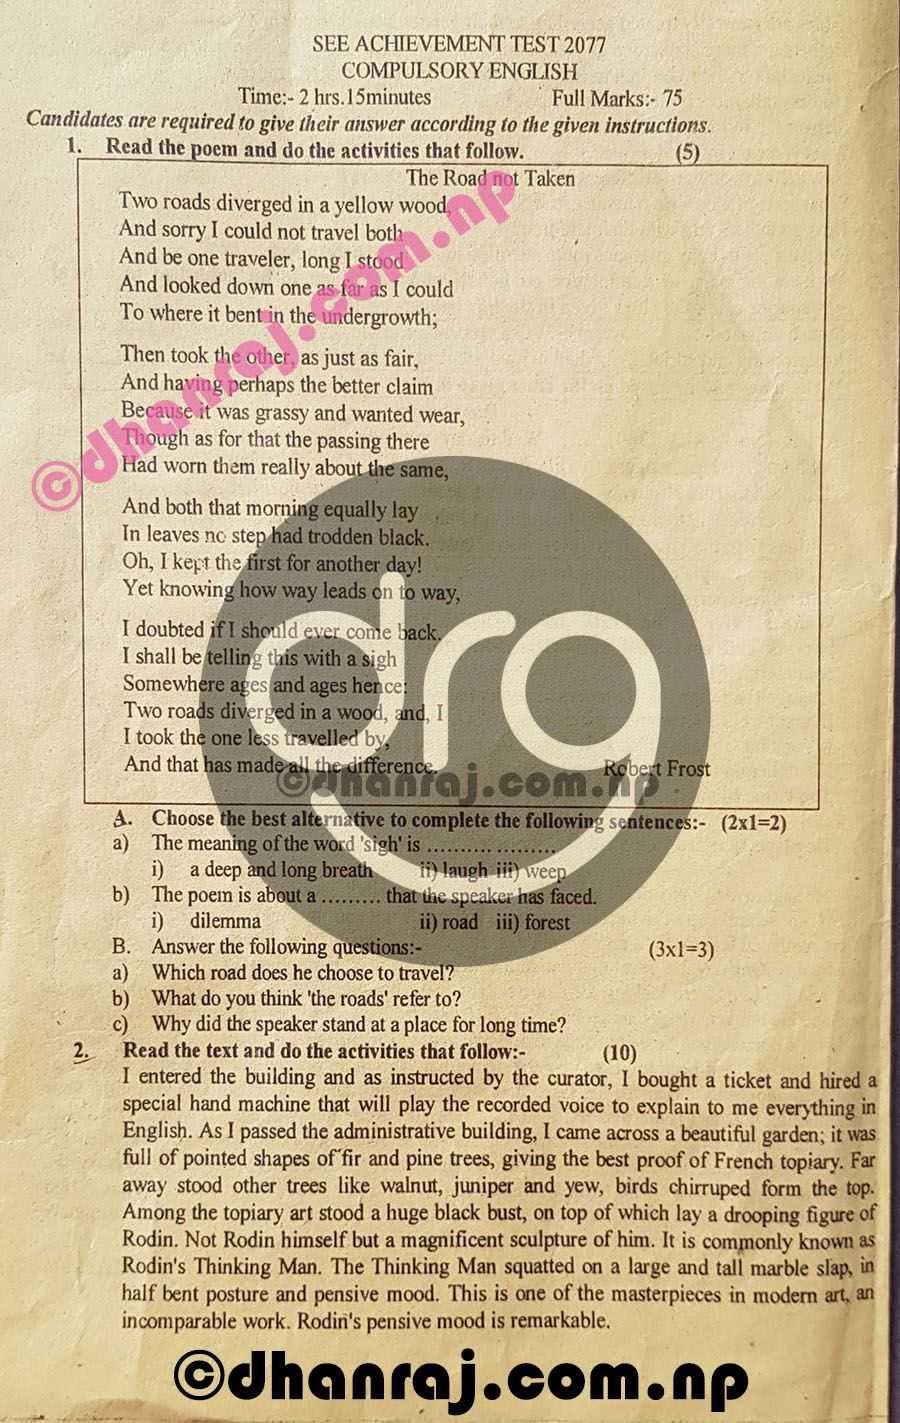 Compulsory-English-Class-10-SEE-Pre-Board-Exam-Question-Paper-2077-PABSON